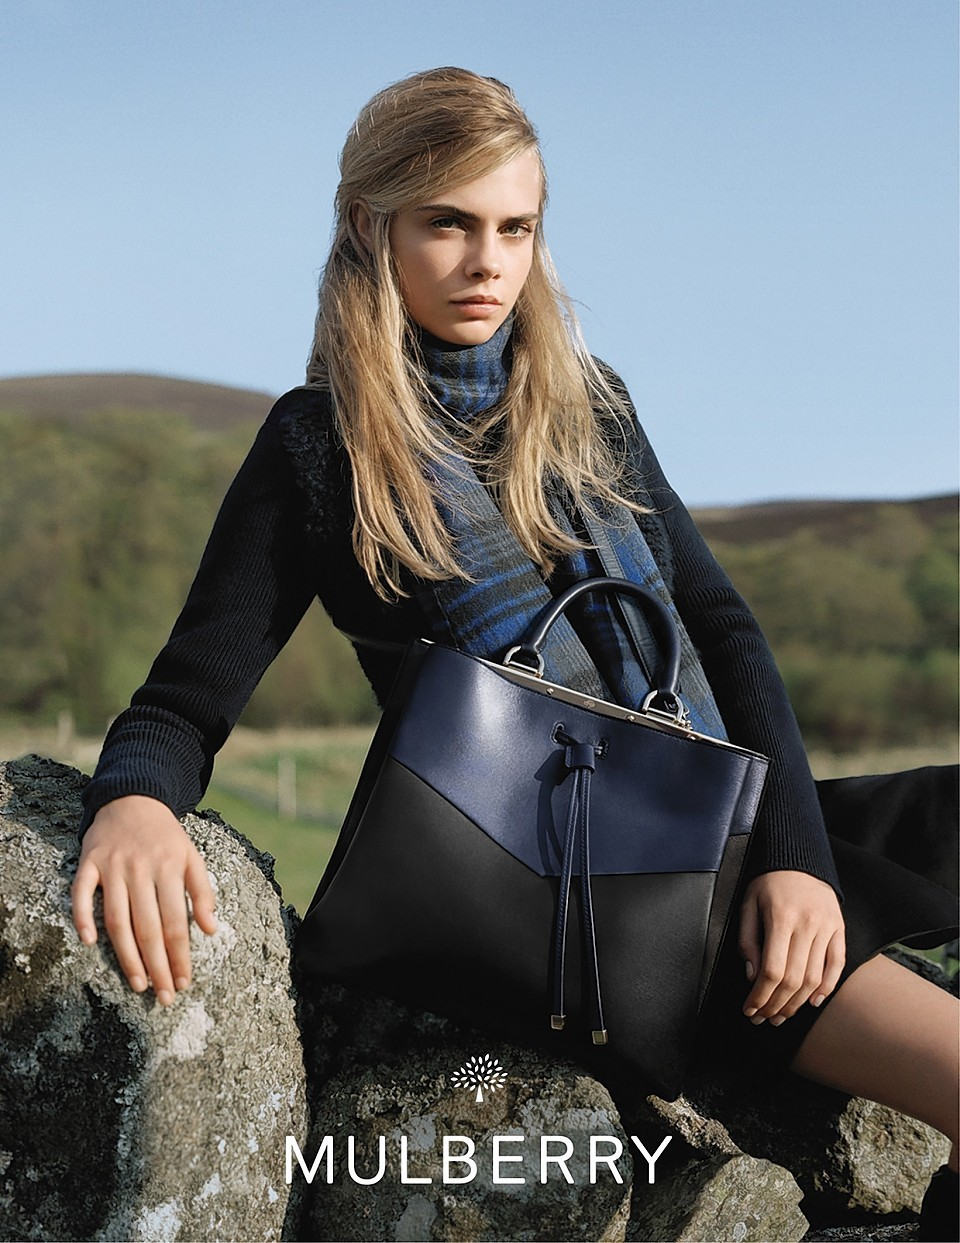 Cara Delevingne in the Highlands modelling Mulberry clothing